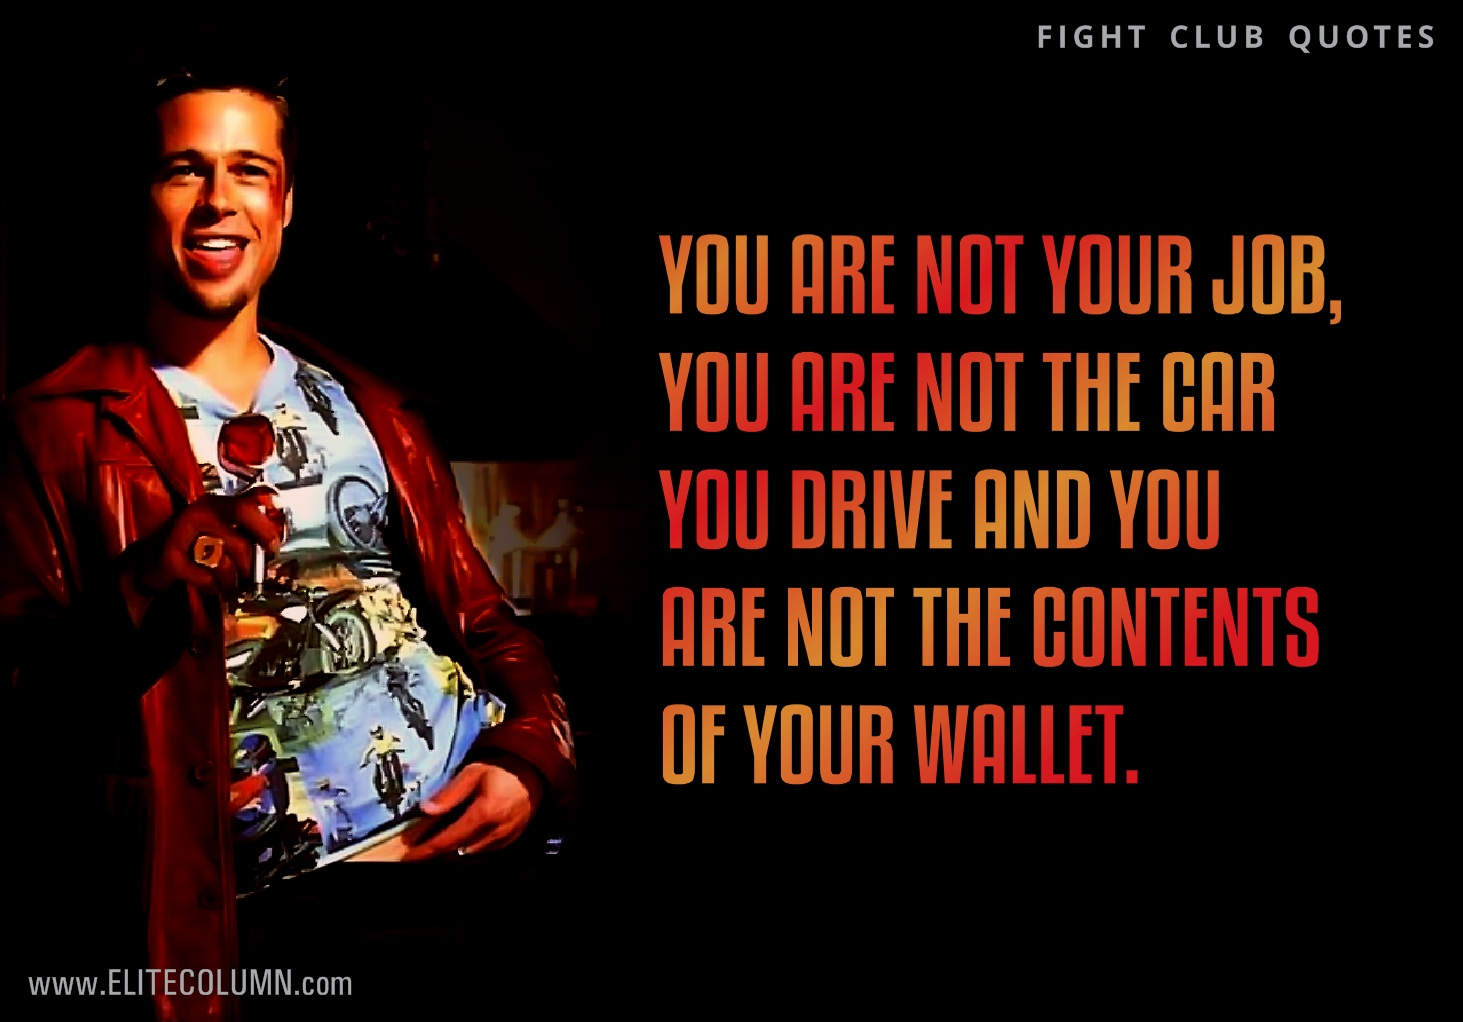 Fight Club Quotes (7)